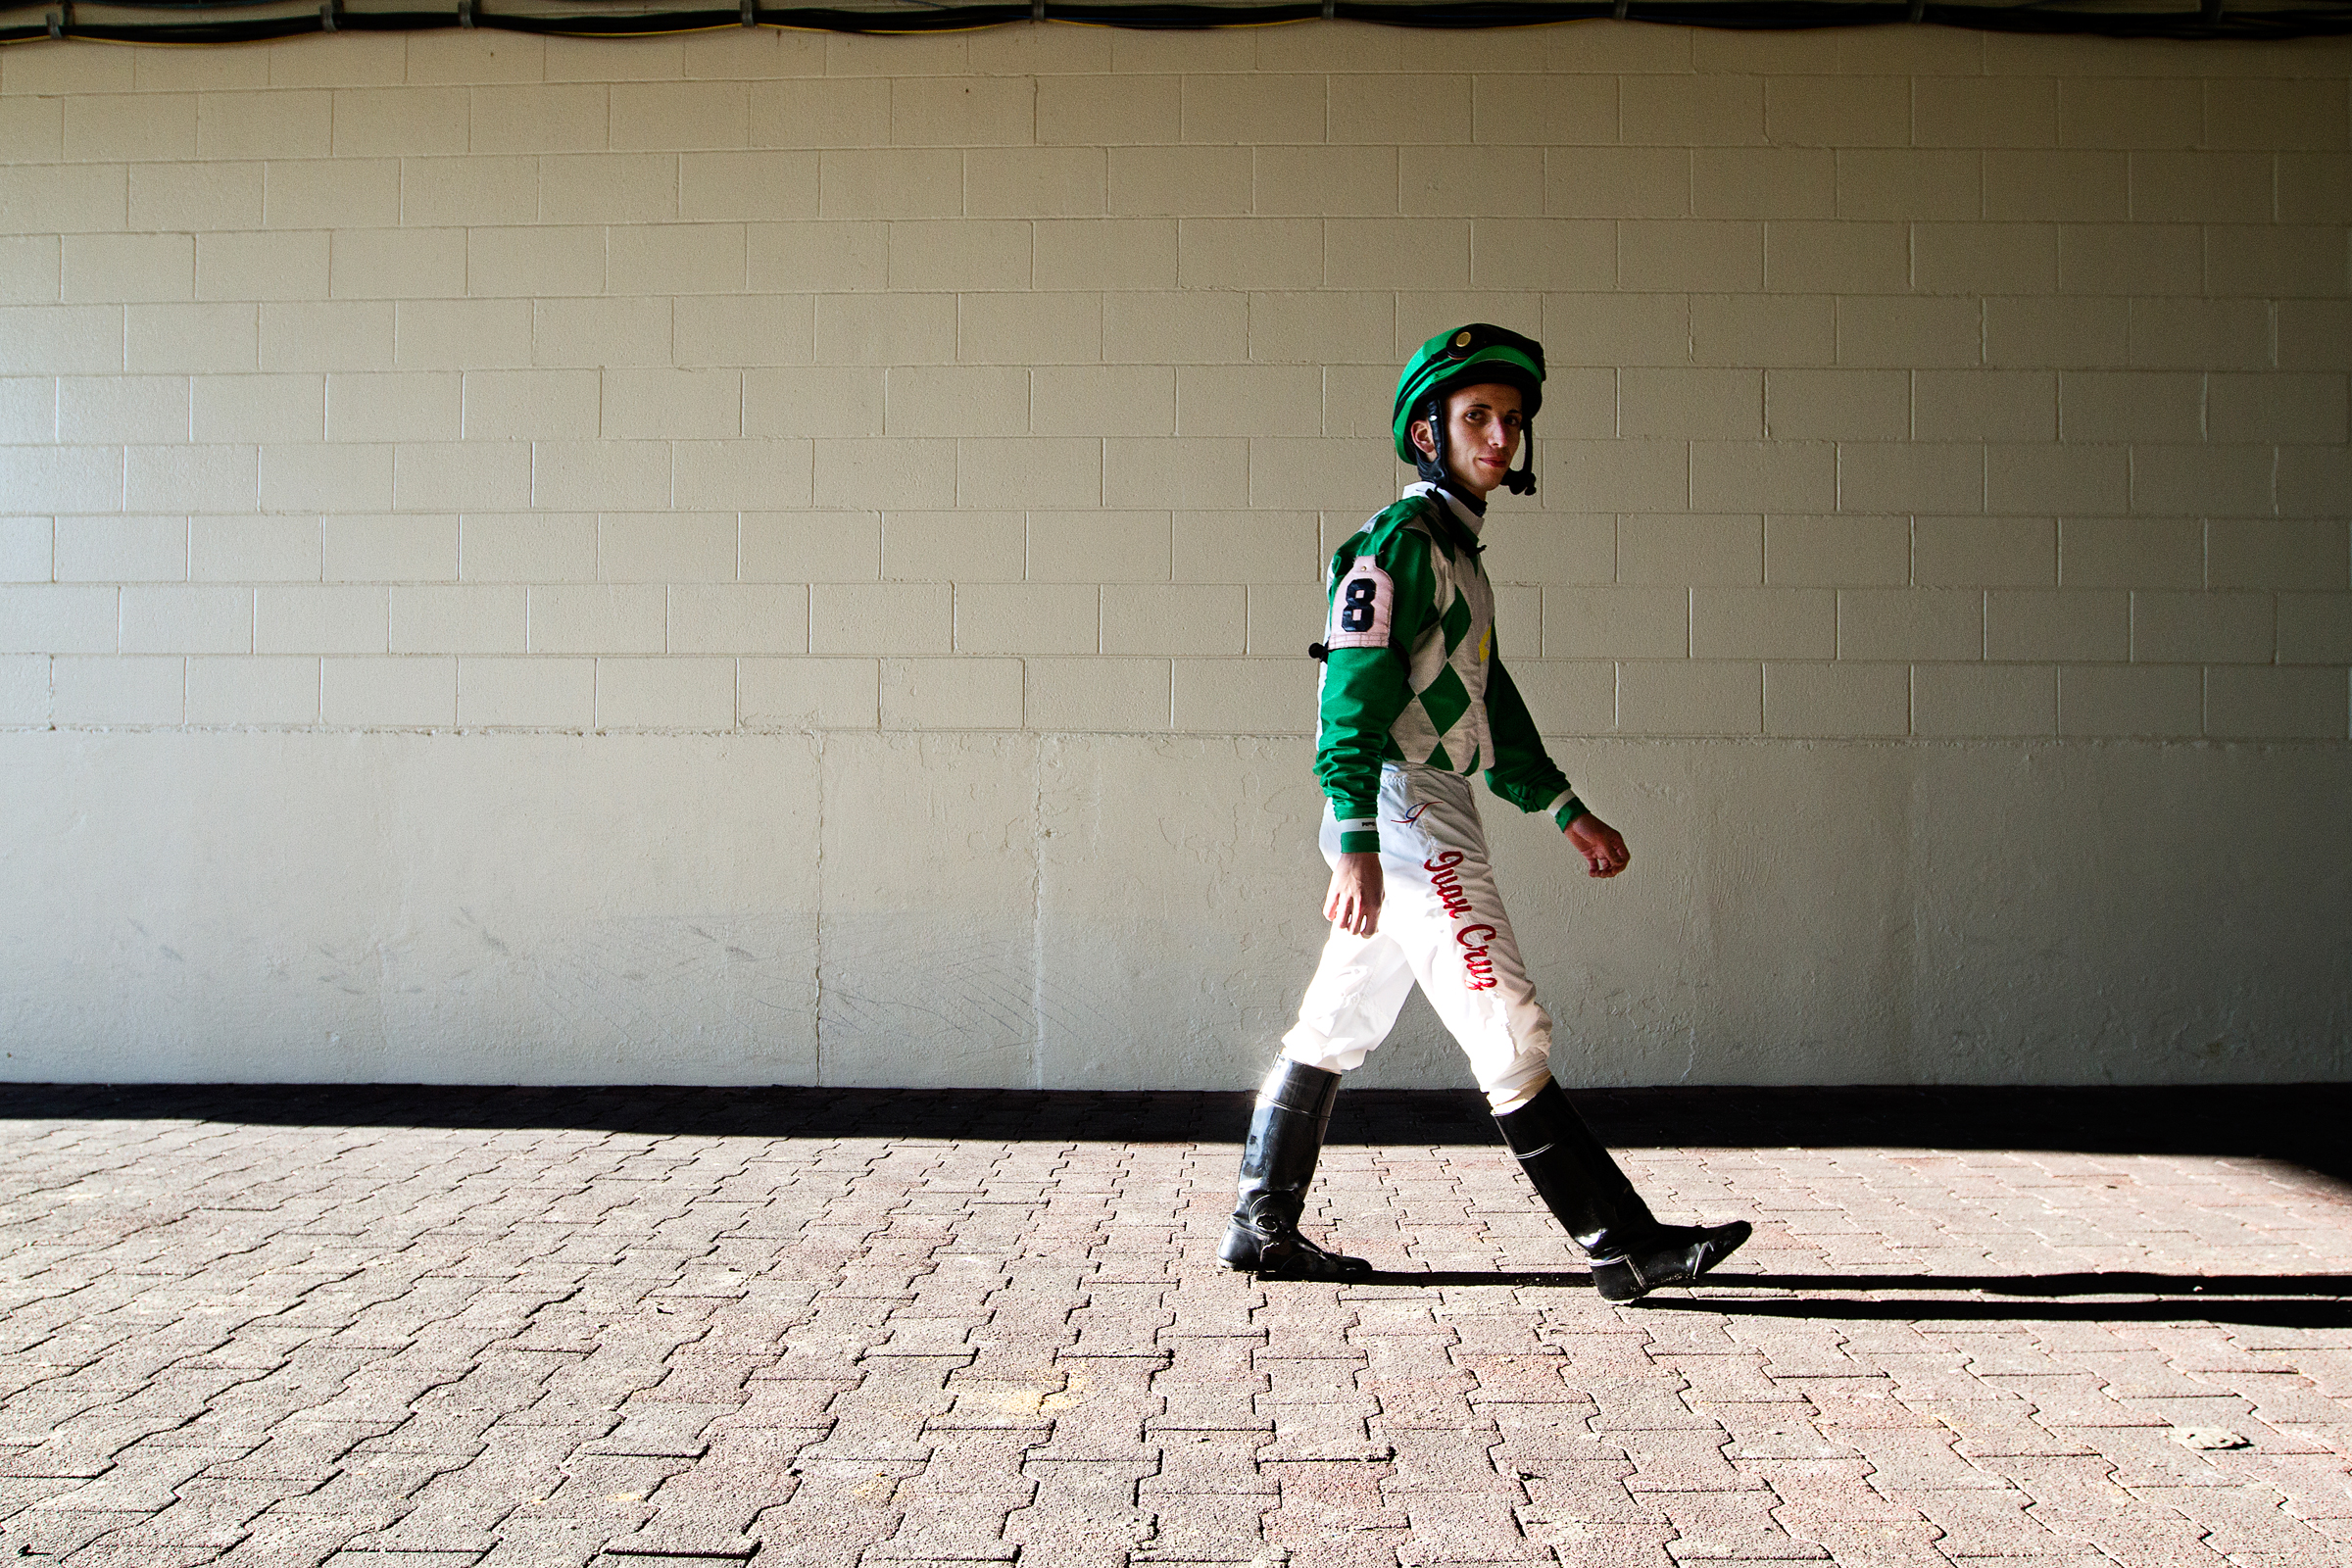 Horse Jockey Ivan Cruz exits the Keenland race course after finishing 7th overall while riding Uncle Ted October 10, 2012 at Keenland in Lexington, Ky. This is Ivan's first year of racing with 14 first places, 19 second places, and 25 third places with 202 starts all together.